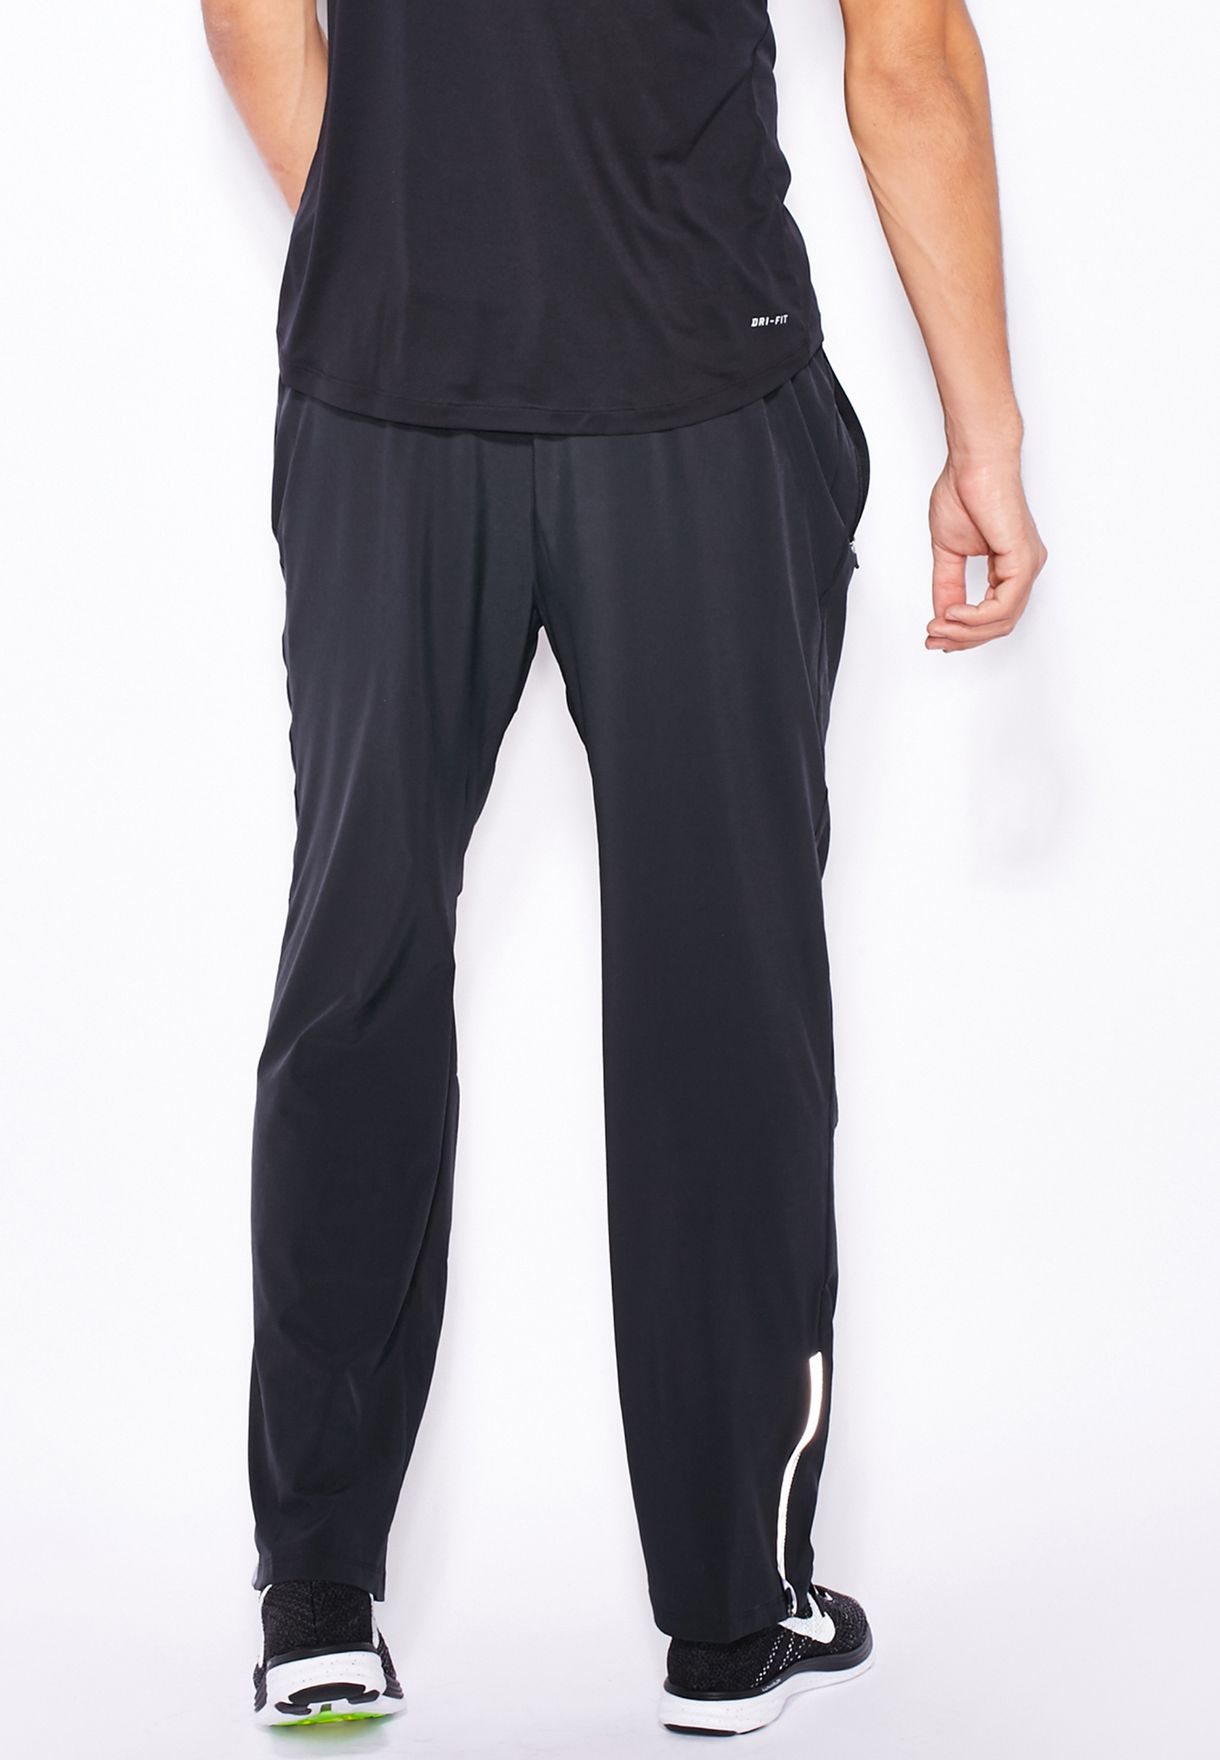 09b19bfbce25 Shop Nike black Dri-Fit Stretch Woven Pants 683885-010 for Men in ...